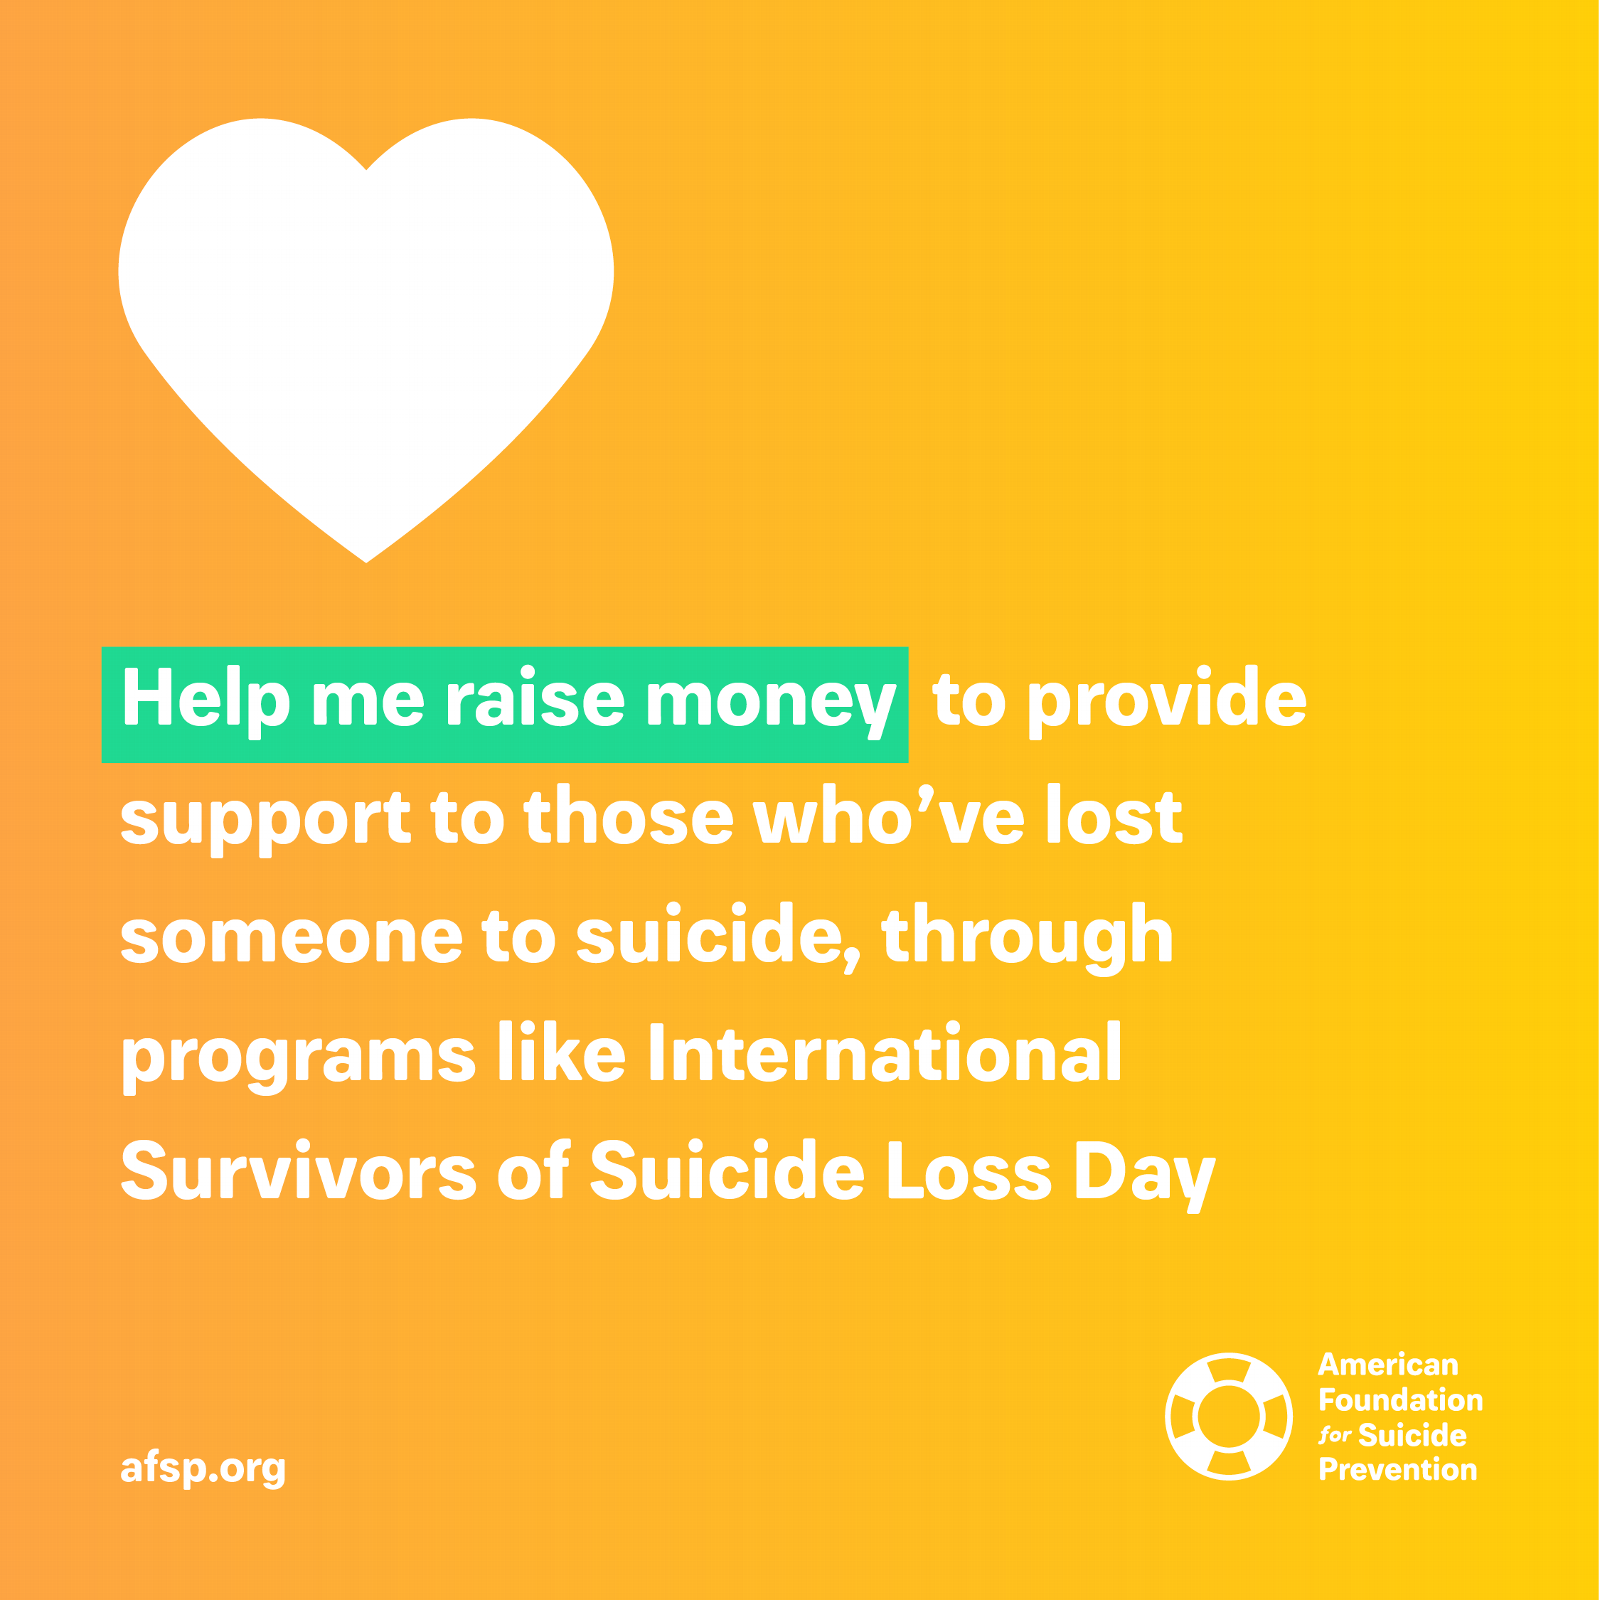 Help me raise money to provide support to those who've lost someone to suicide, through programs like International Survivors of Suicide Loss (ISOSL) Day